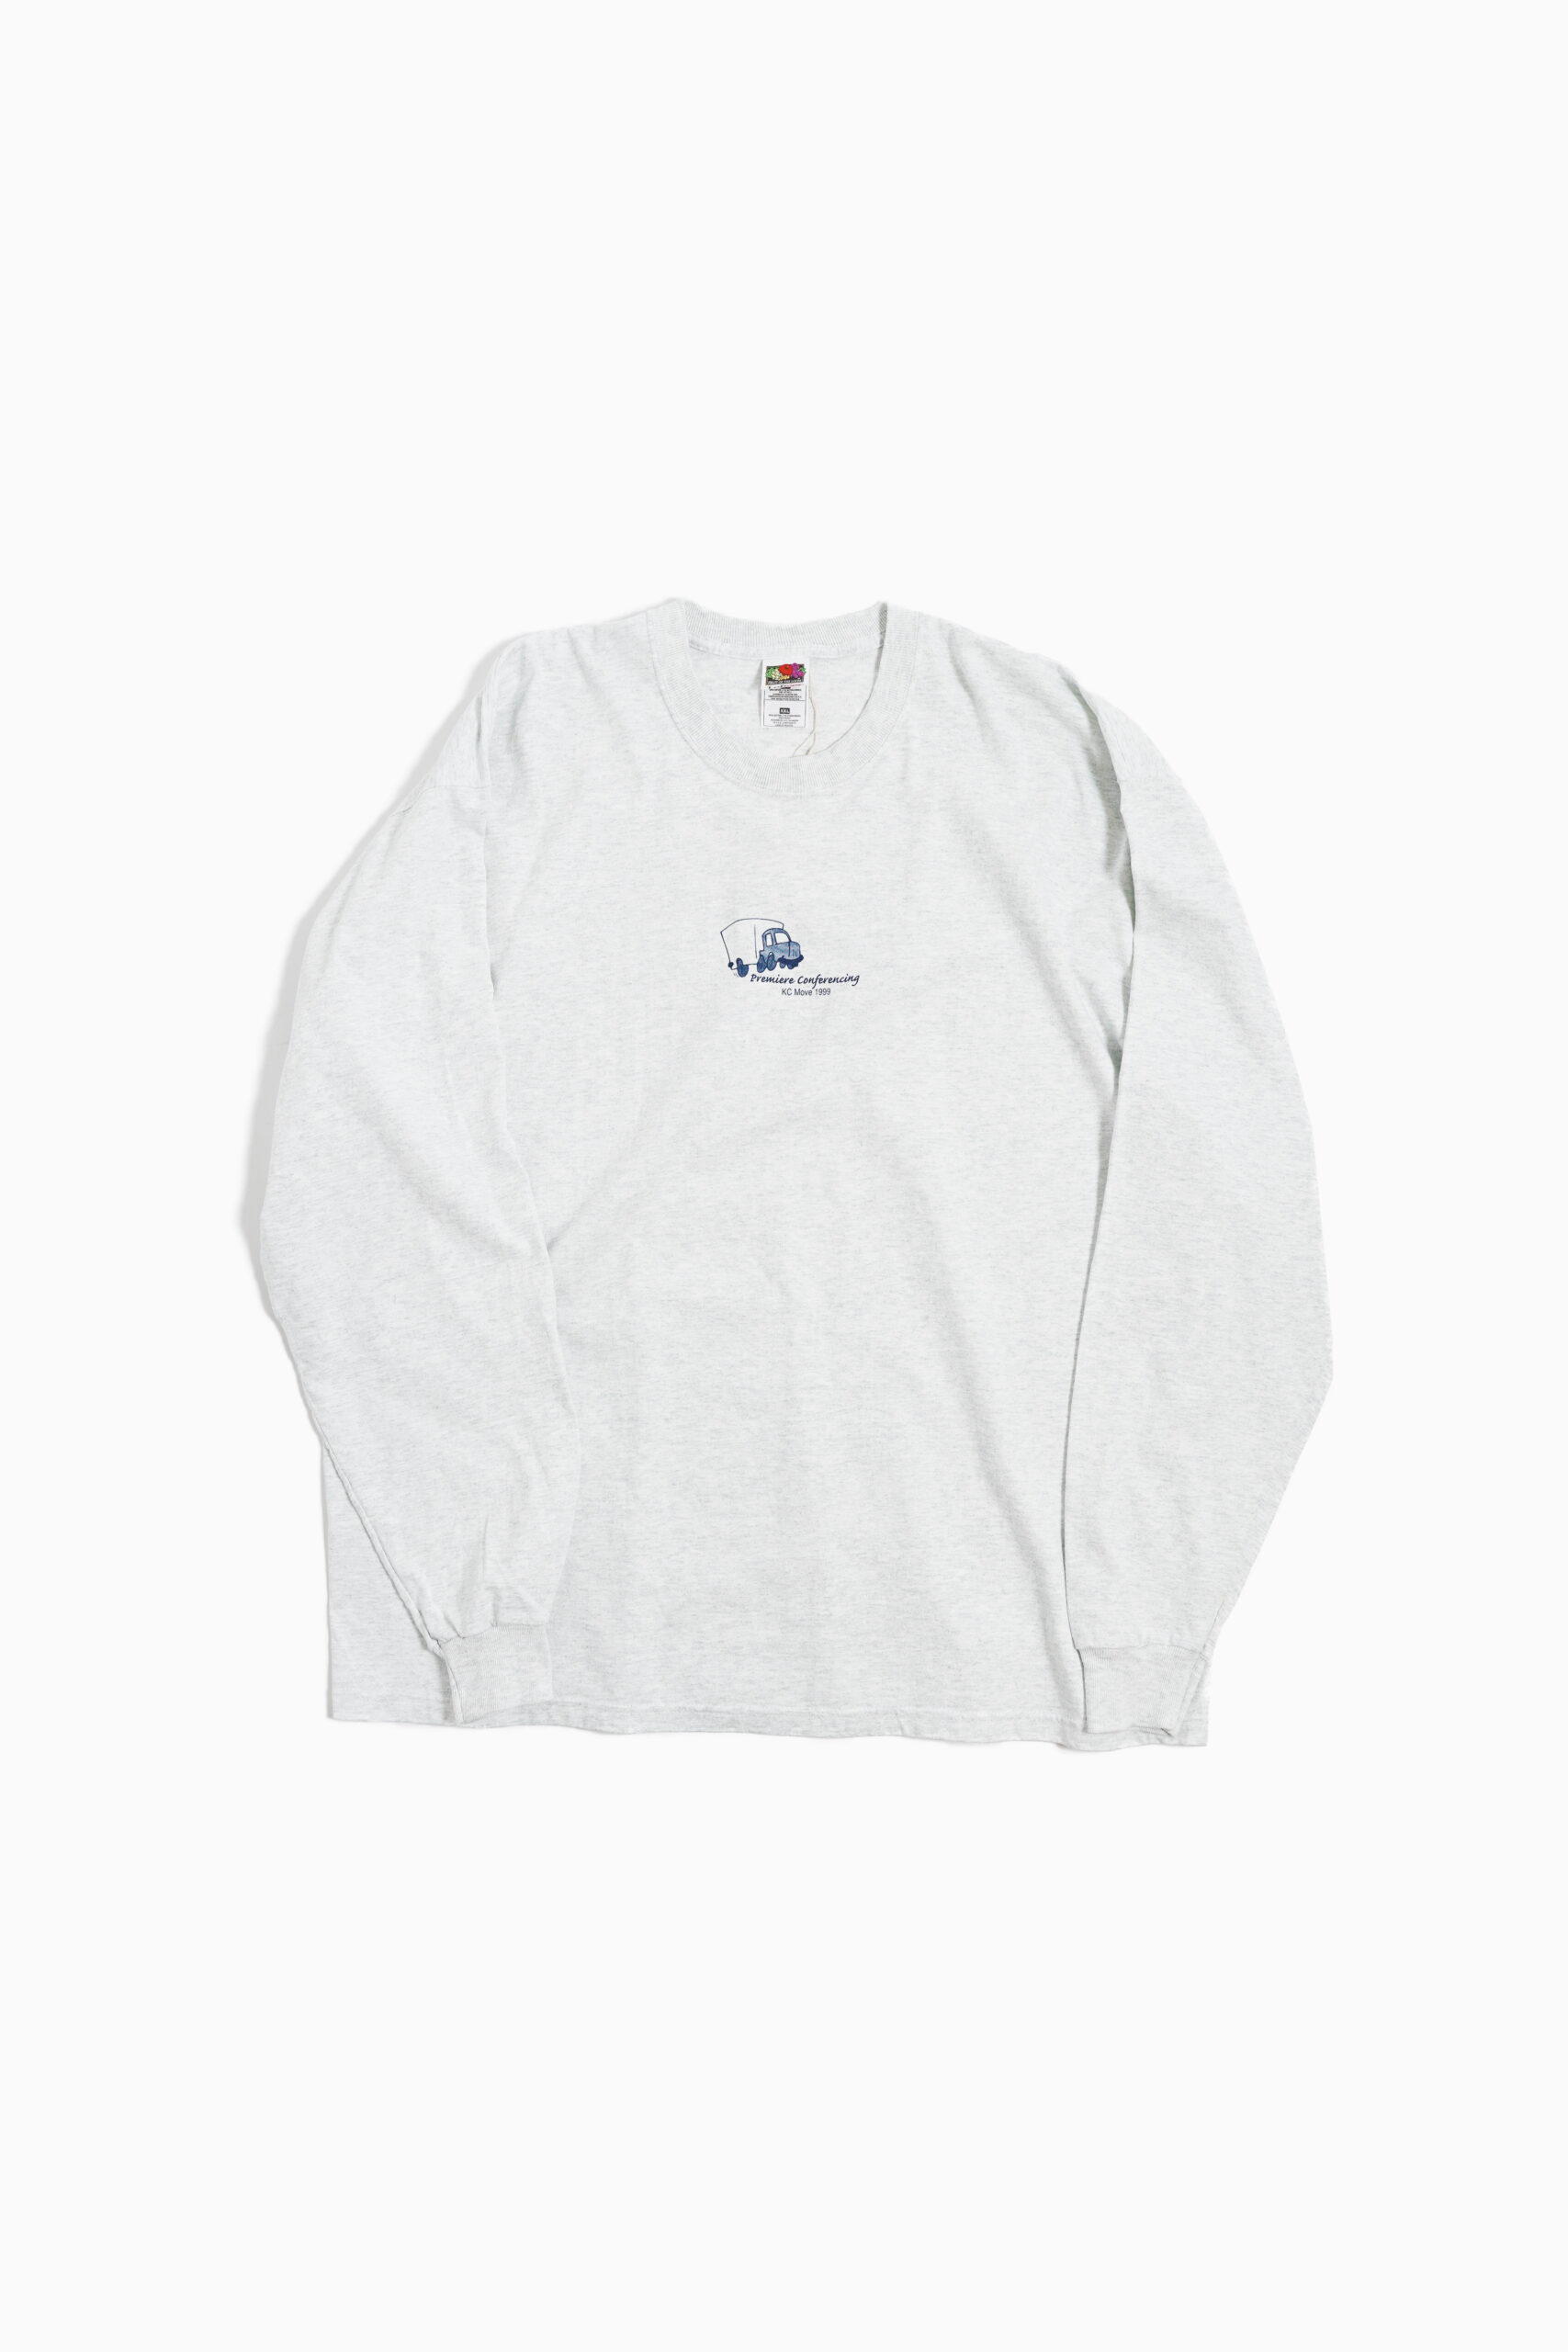 PREMIERE CONFERENCING PRINTED L/S TEE